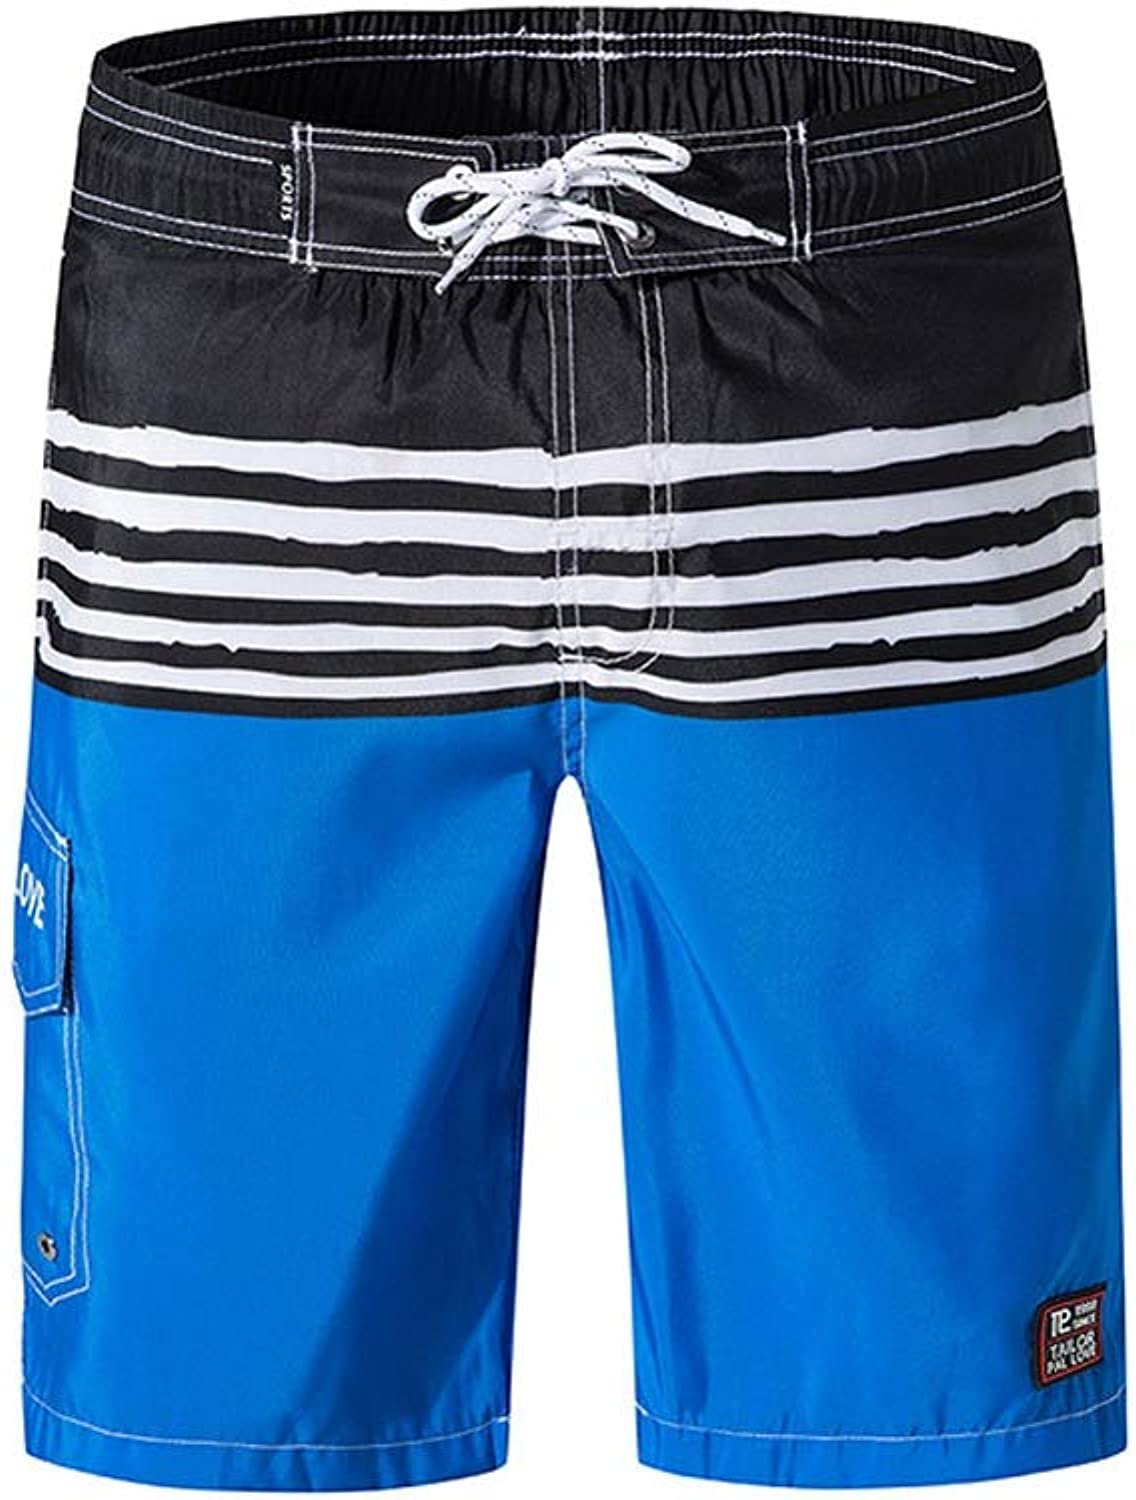 WSJTT Men's Swim Trunks, Boys Shorts Leisure Swimming Running Quick Dry Board Beach Shorts with Mesh Lining, Pockets, Adjustable Drawstring (color   A, Size   M)